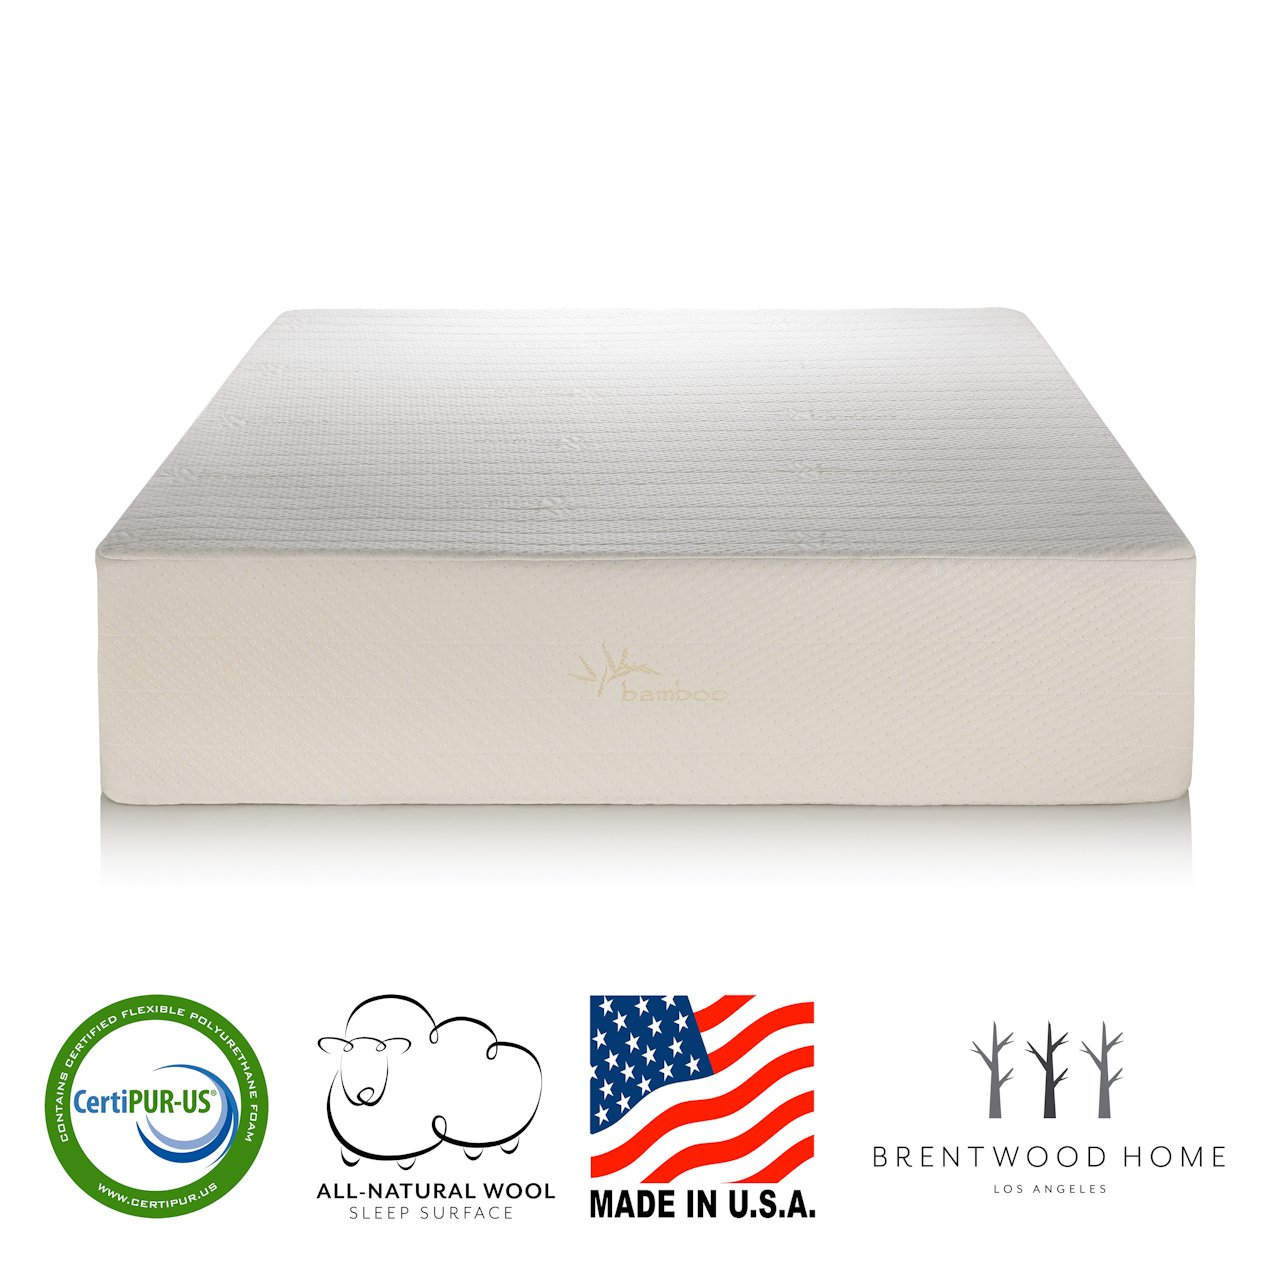 Brentwood Home Bamboo Gel 13 Memory Foam Mattress Made in